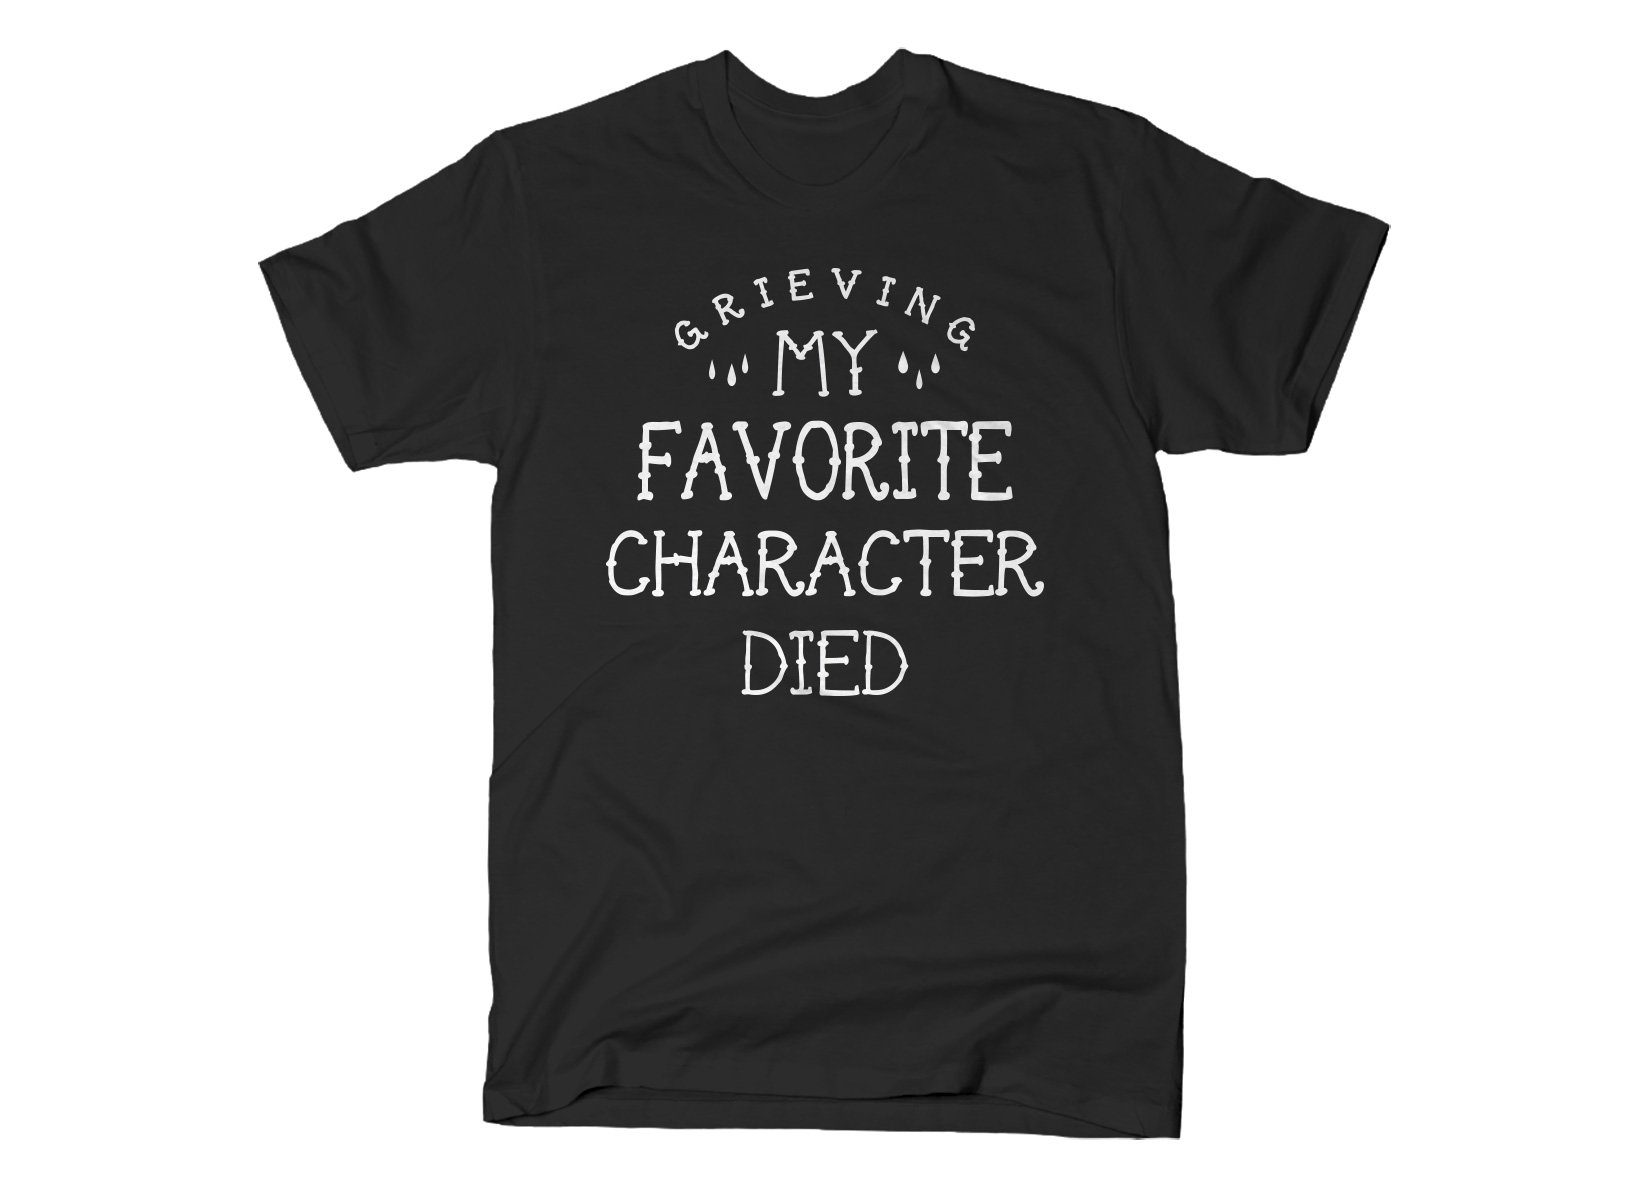 My Favorite Character Died on Mens T-Shirt